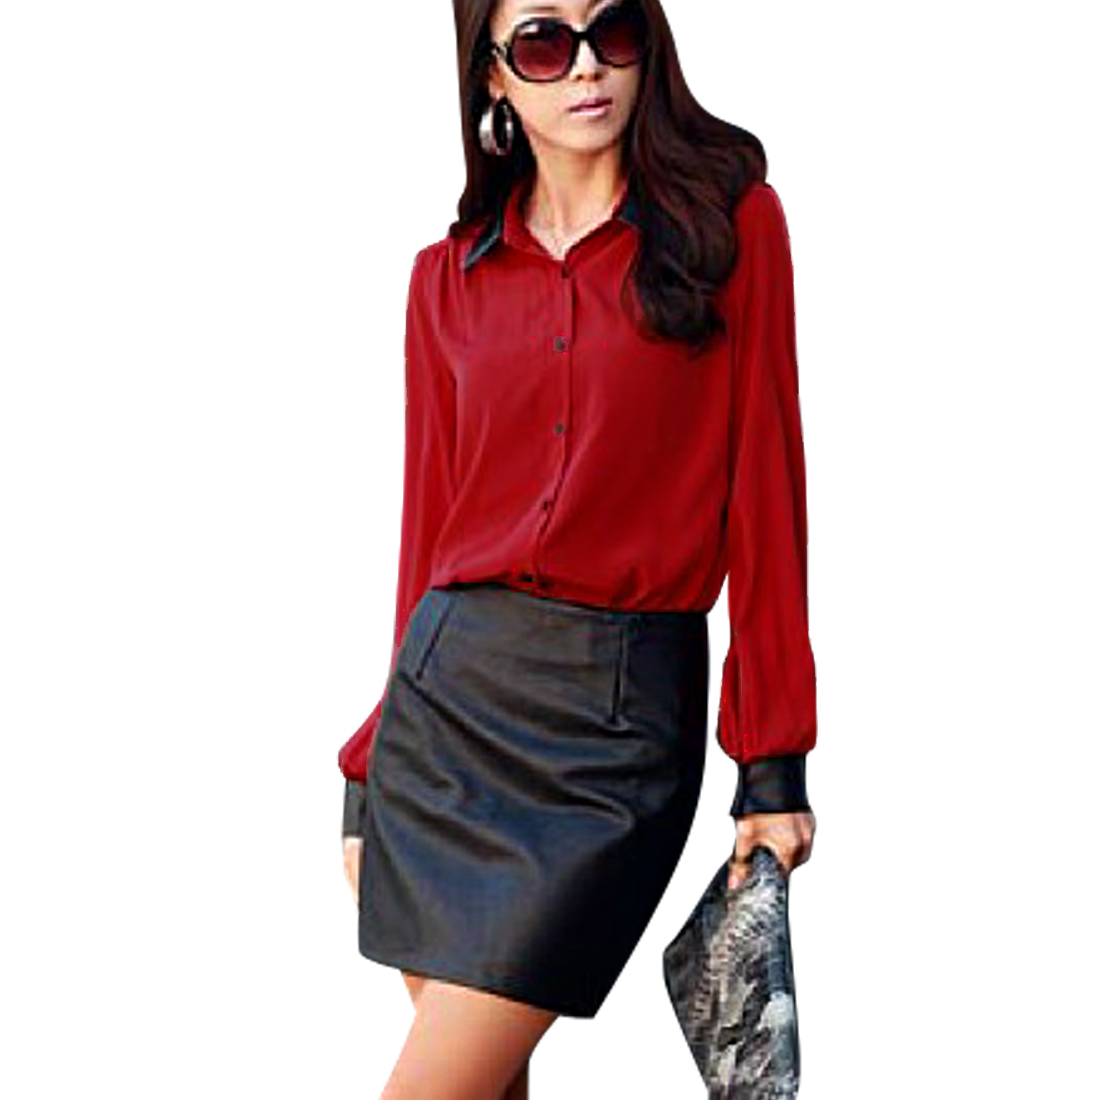 Ladies' Fashionable Faux Leather Point Collar Spliced Red Semi-sheer Shirt XS